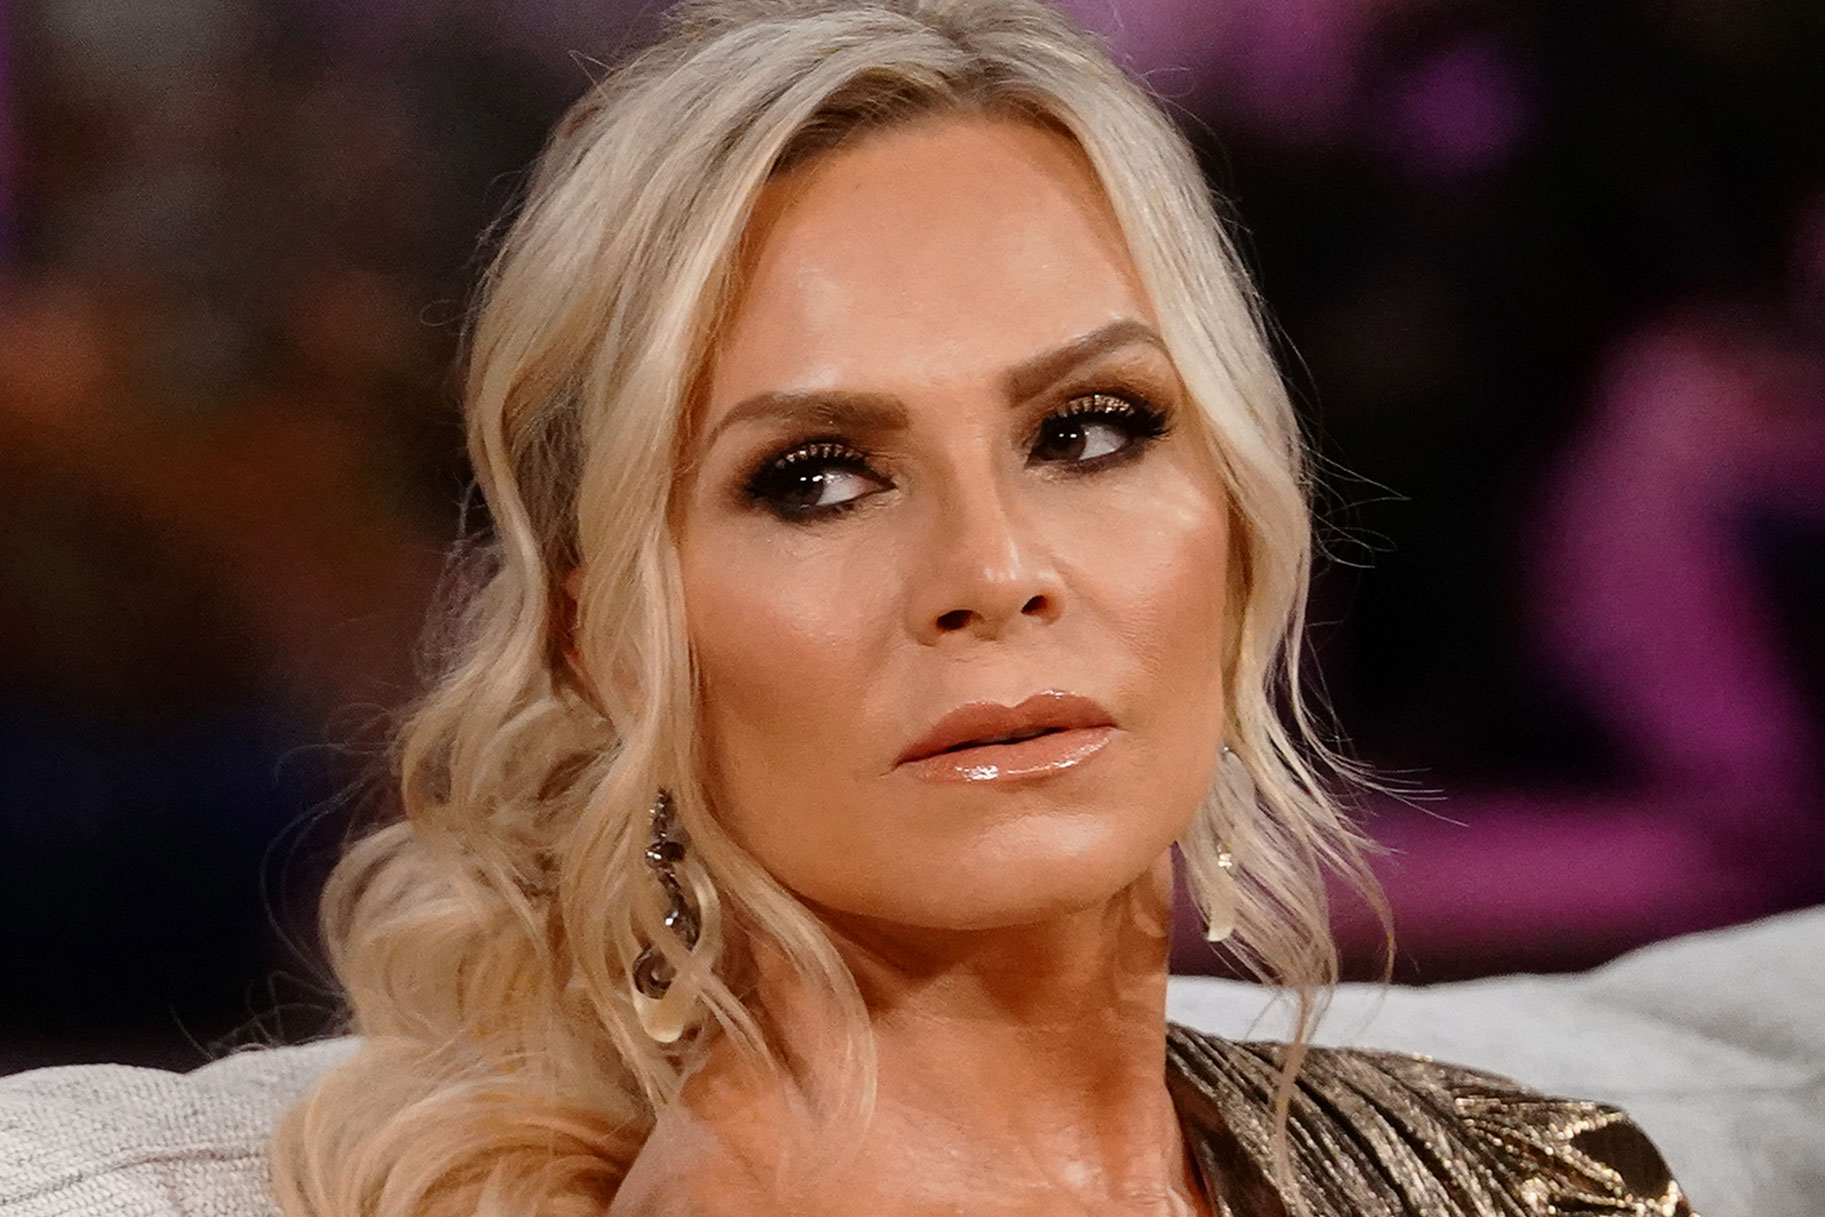 tamra-judge-would-love-to-return-to-rhoc-she-reportedly-thinks-the-show-is-a-hot-mess-without-her